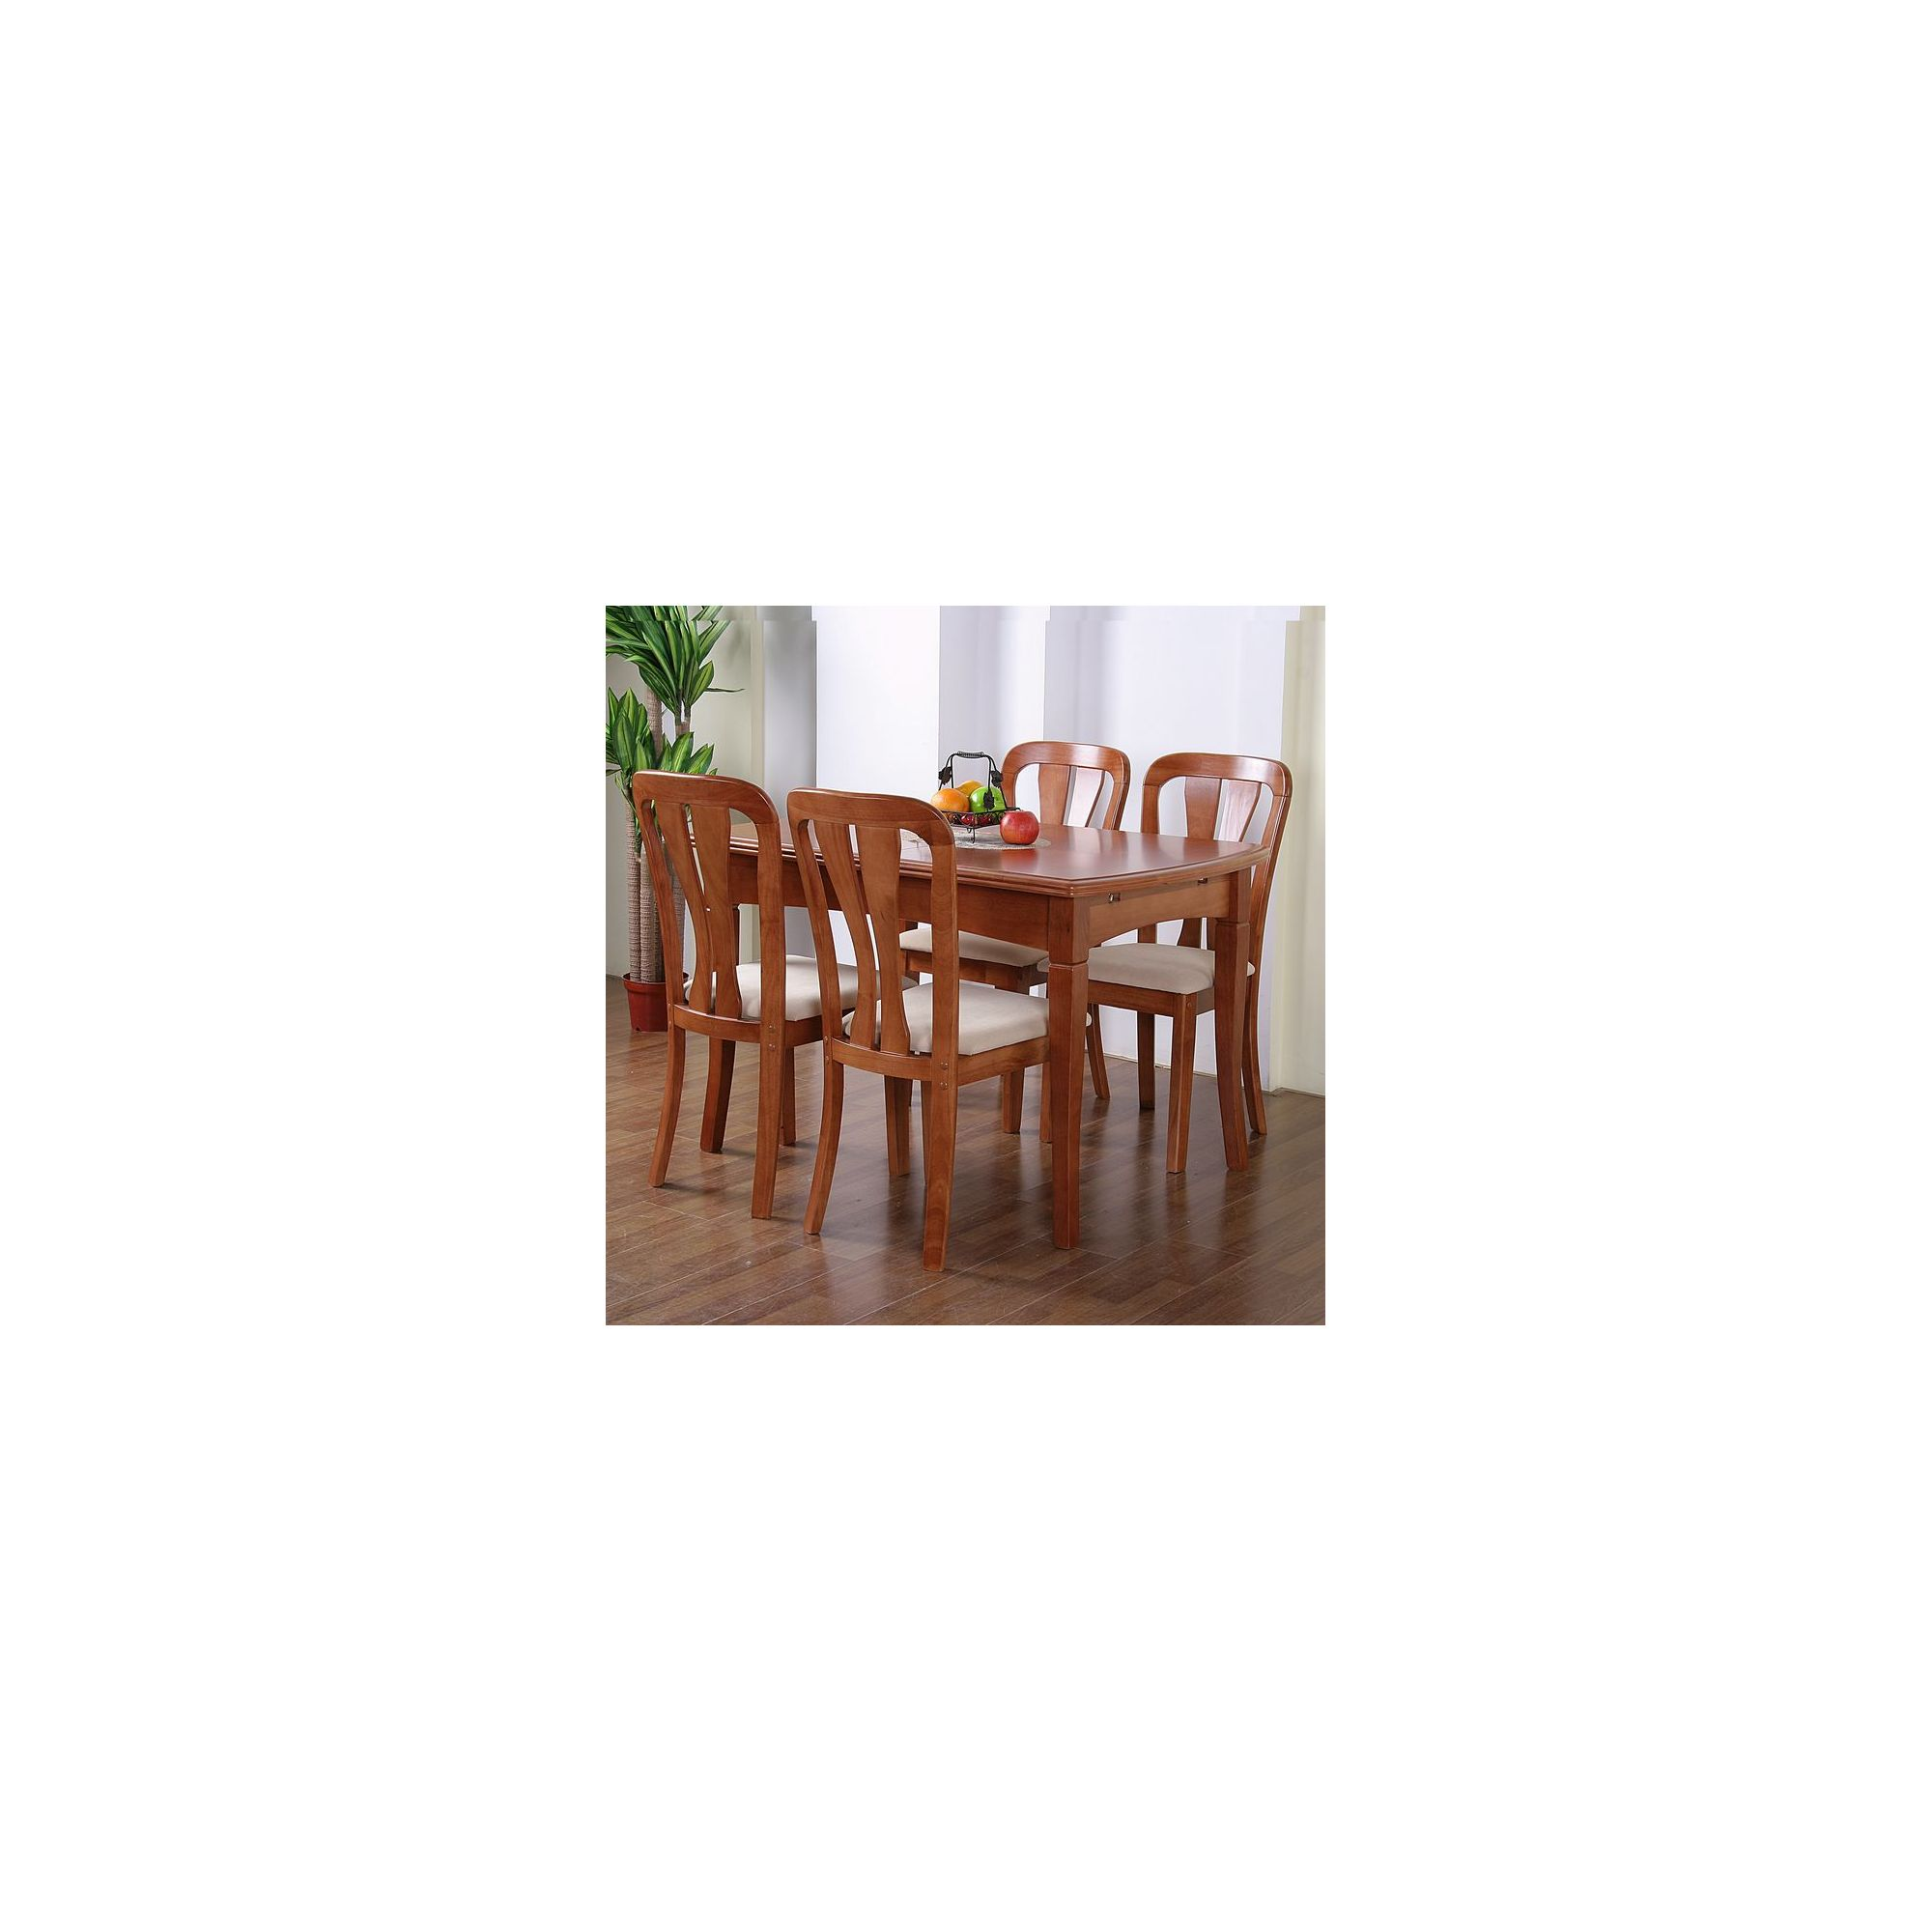 G&P Furniture Windsor House 5-Piece Grantham Extending Dining Set with Slatted Back Chair - Cherry at Tesco Direct